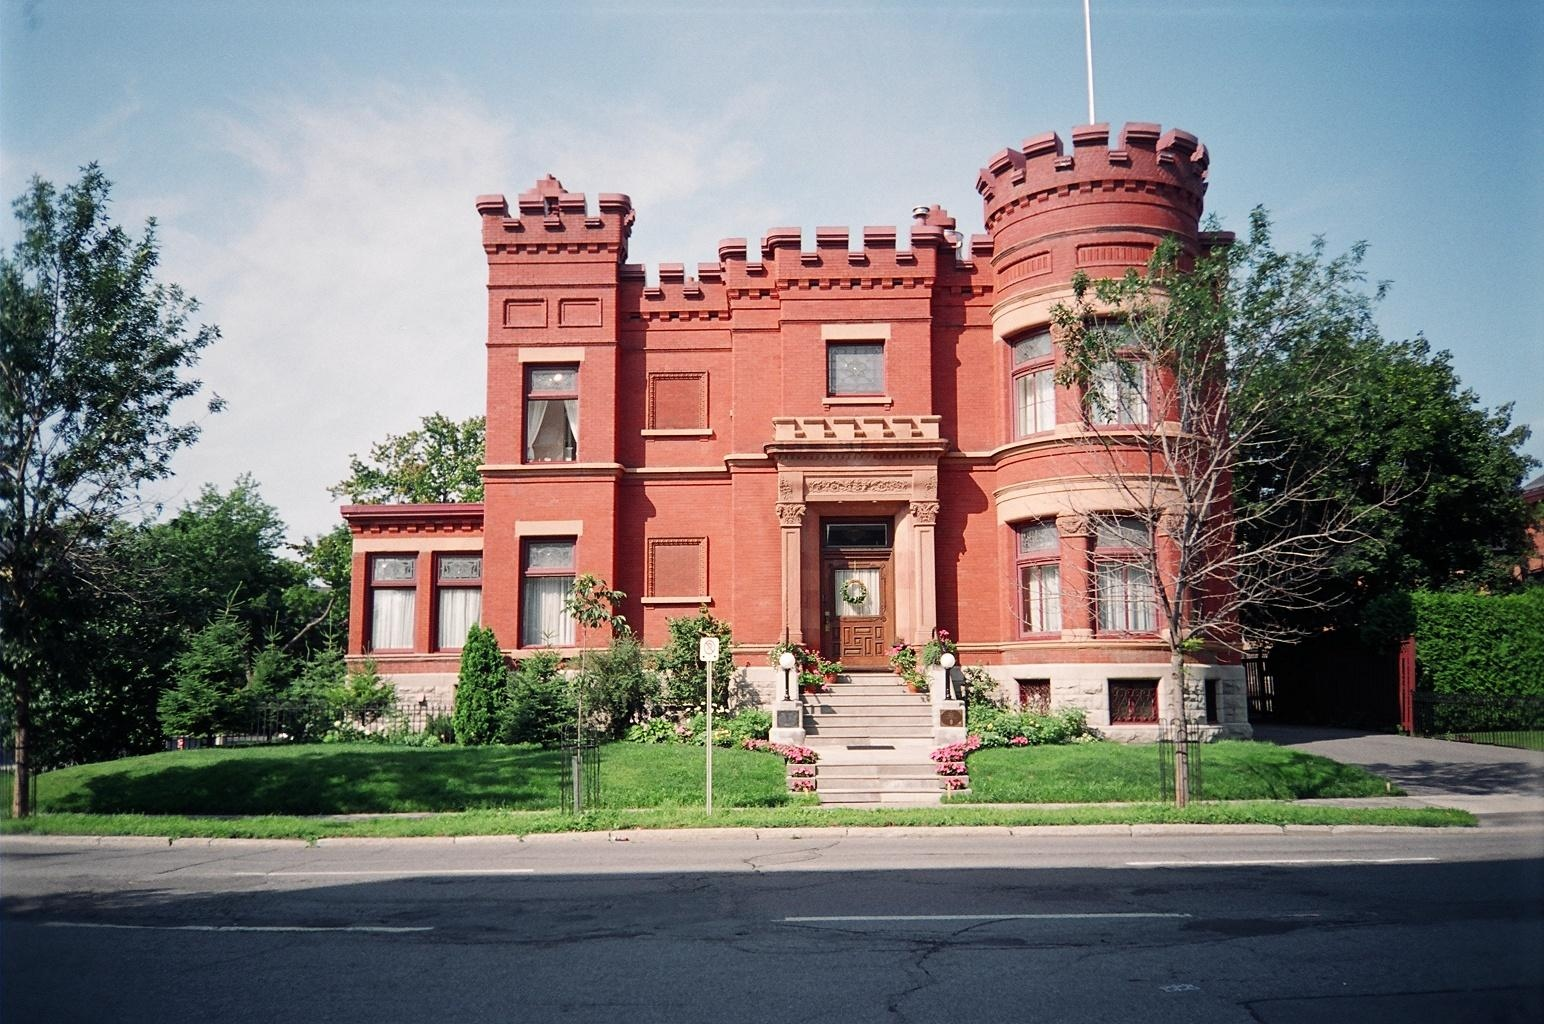 Exterior photo of a red brick two-storey mansion that resembles a castle with a corner turret.